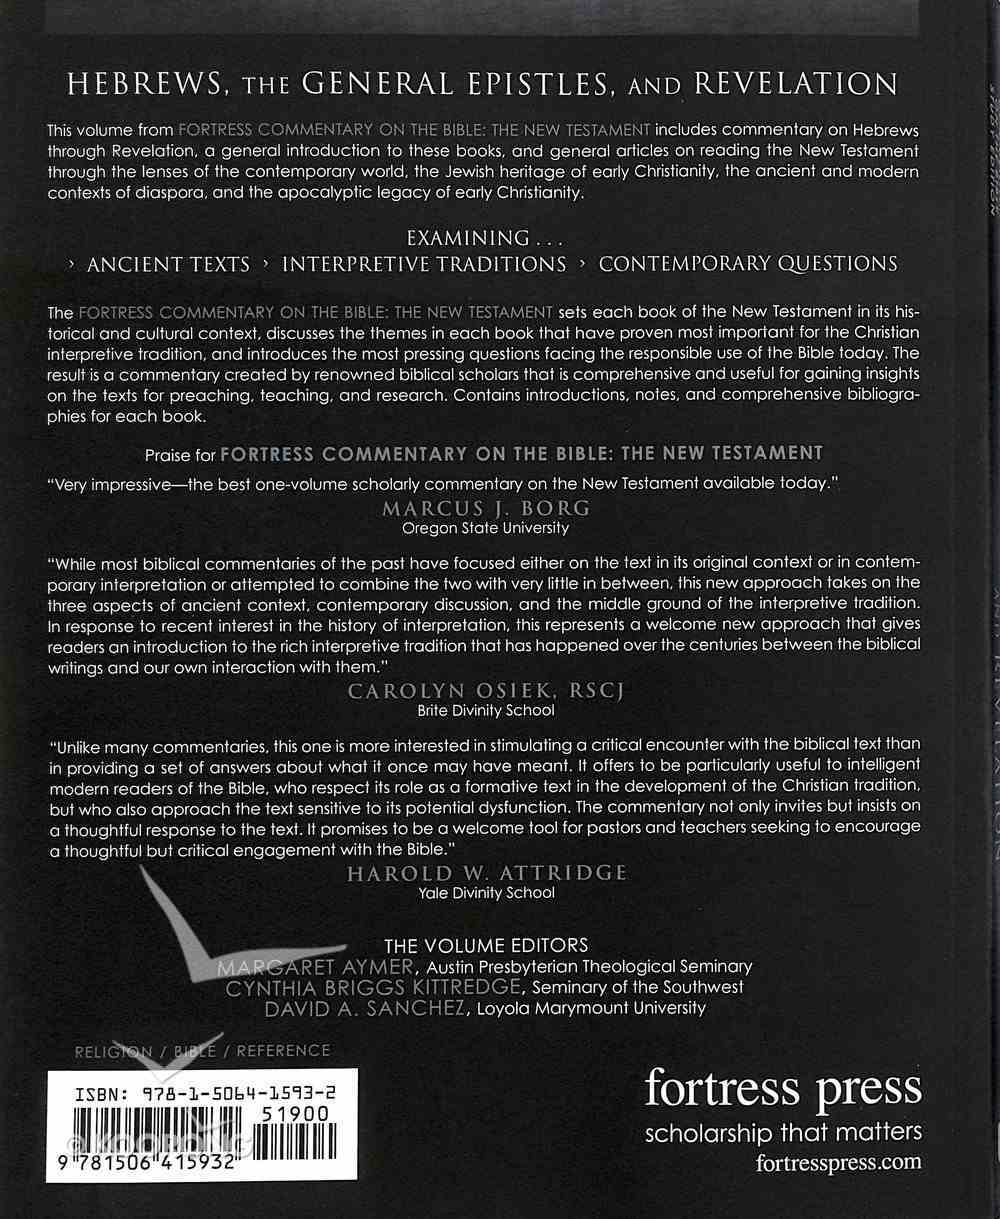 Hebrews, the General Epistles, and Revelations (Fortress Commentary On The Bible Series) Paperback